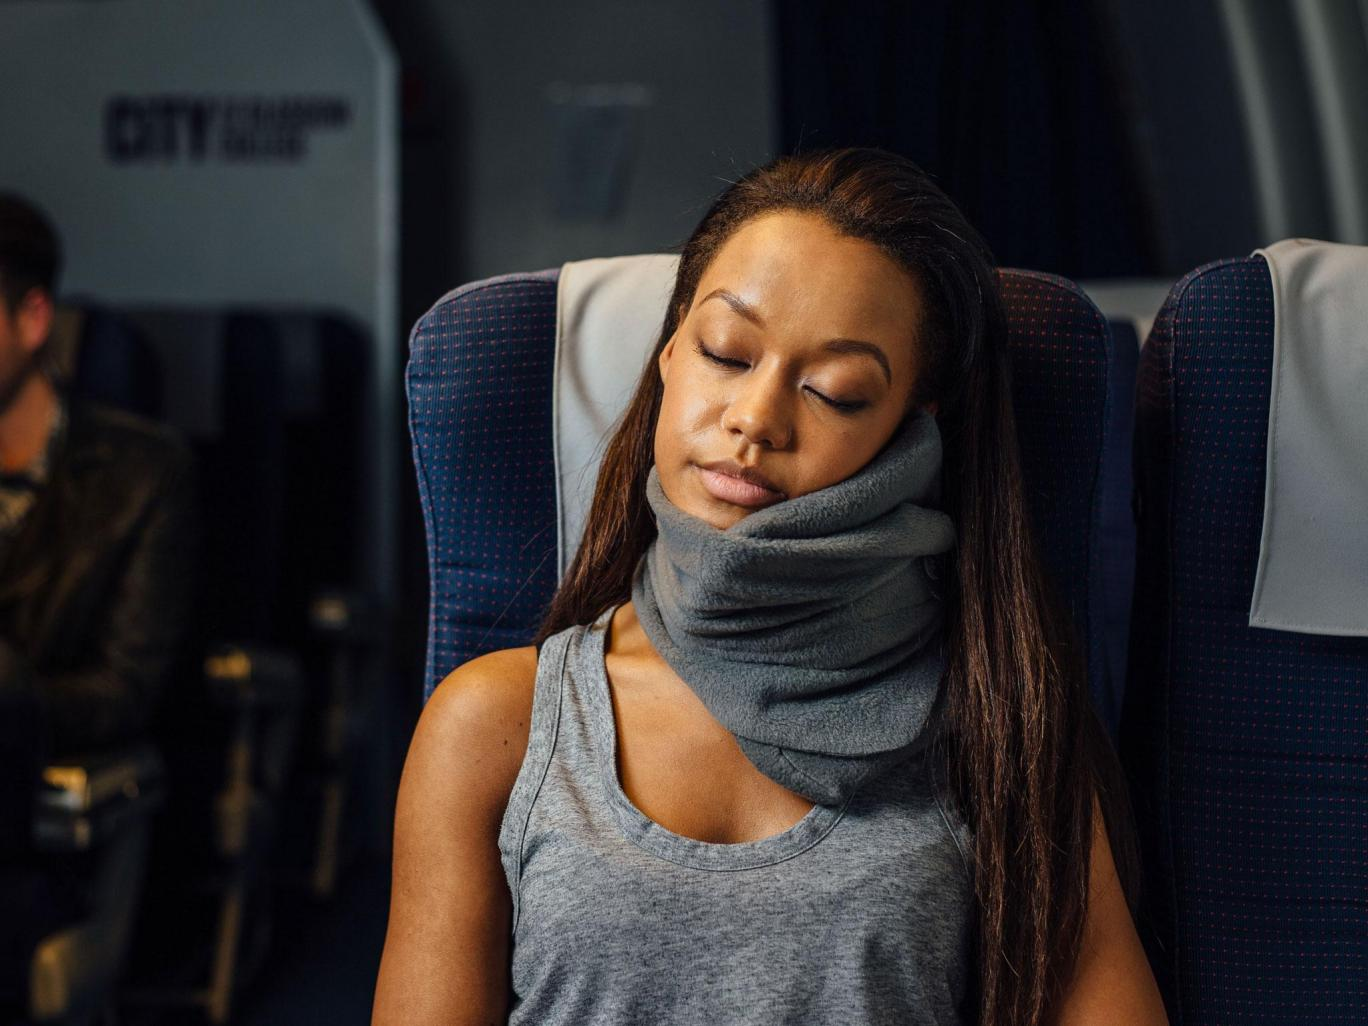 10 Best Travel Pillows The Top Selling Neck Pillows